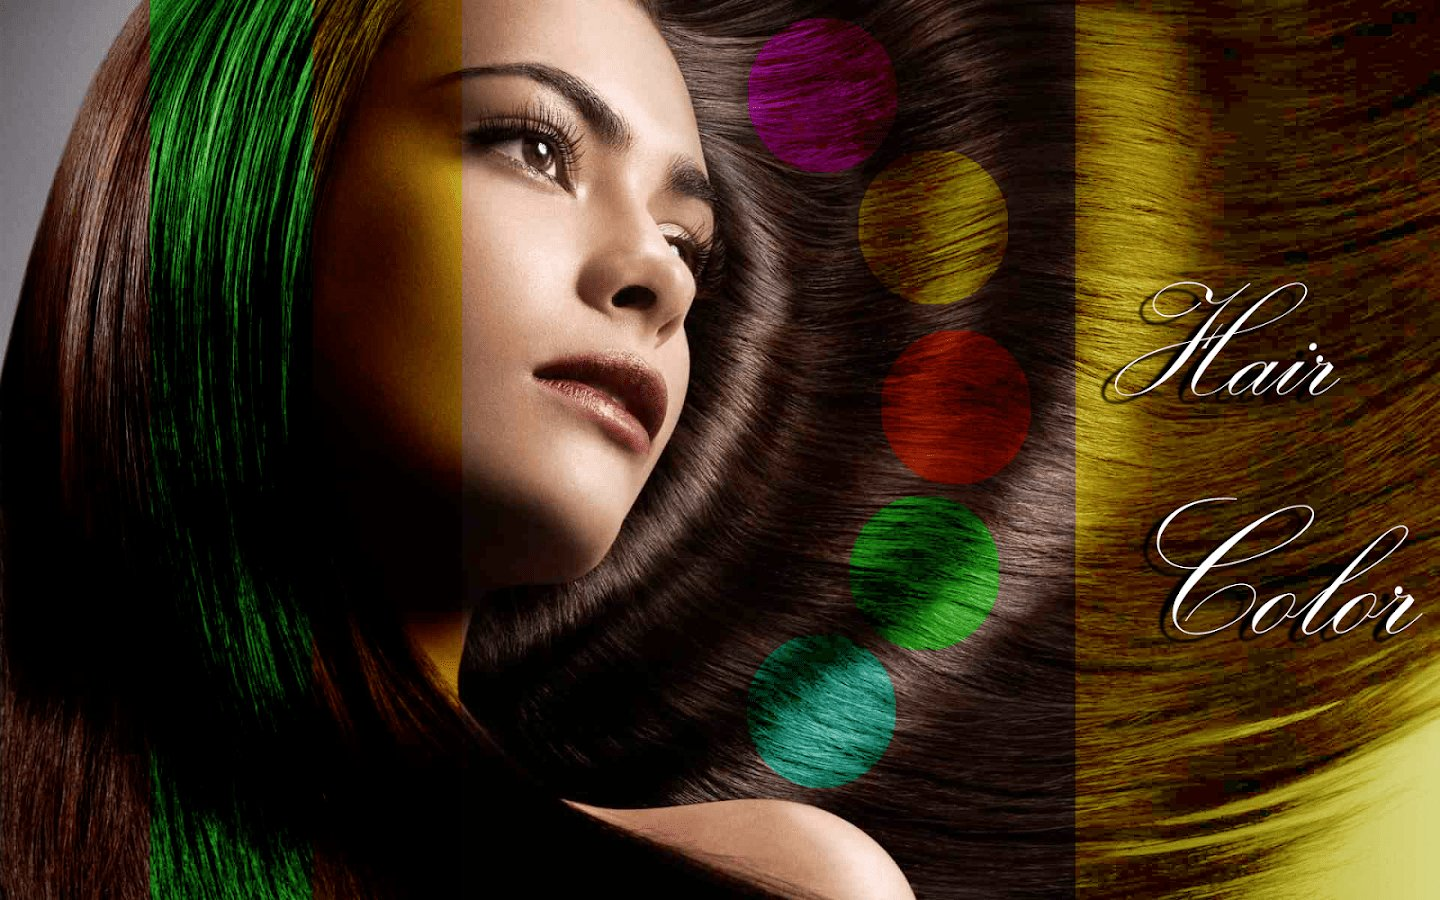 The Best Hair Color Changer Real Android Apps On Google Play Pictures